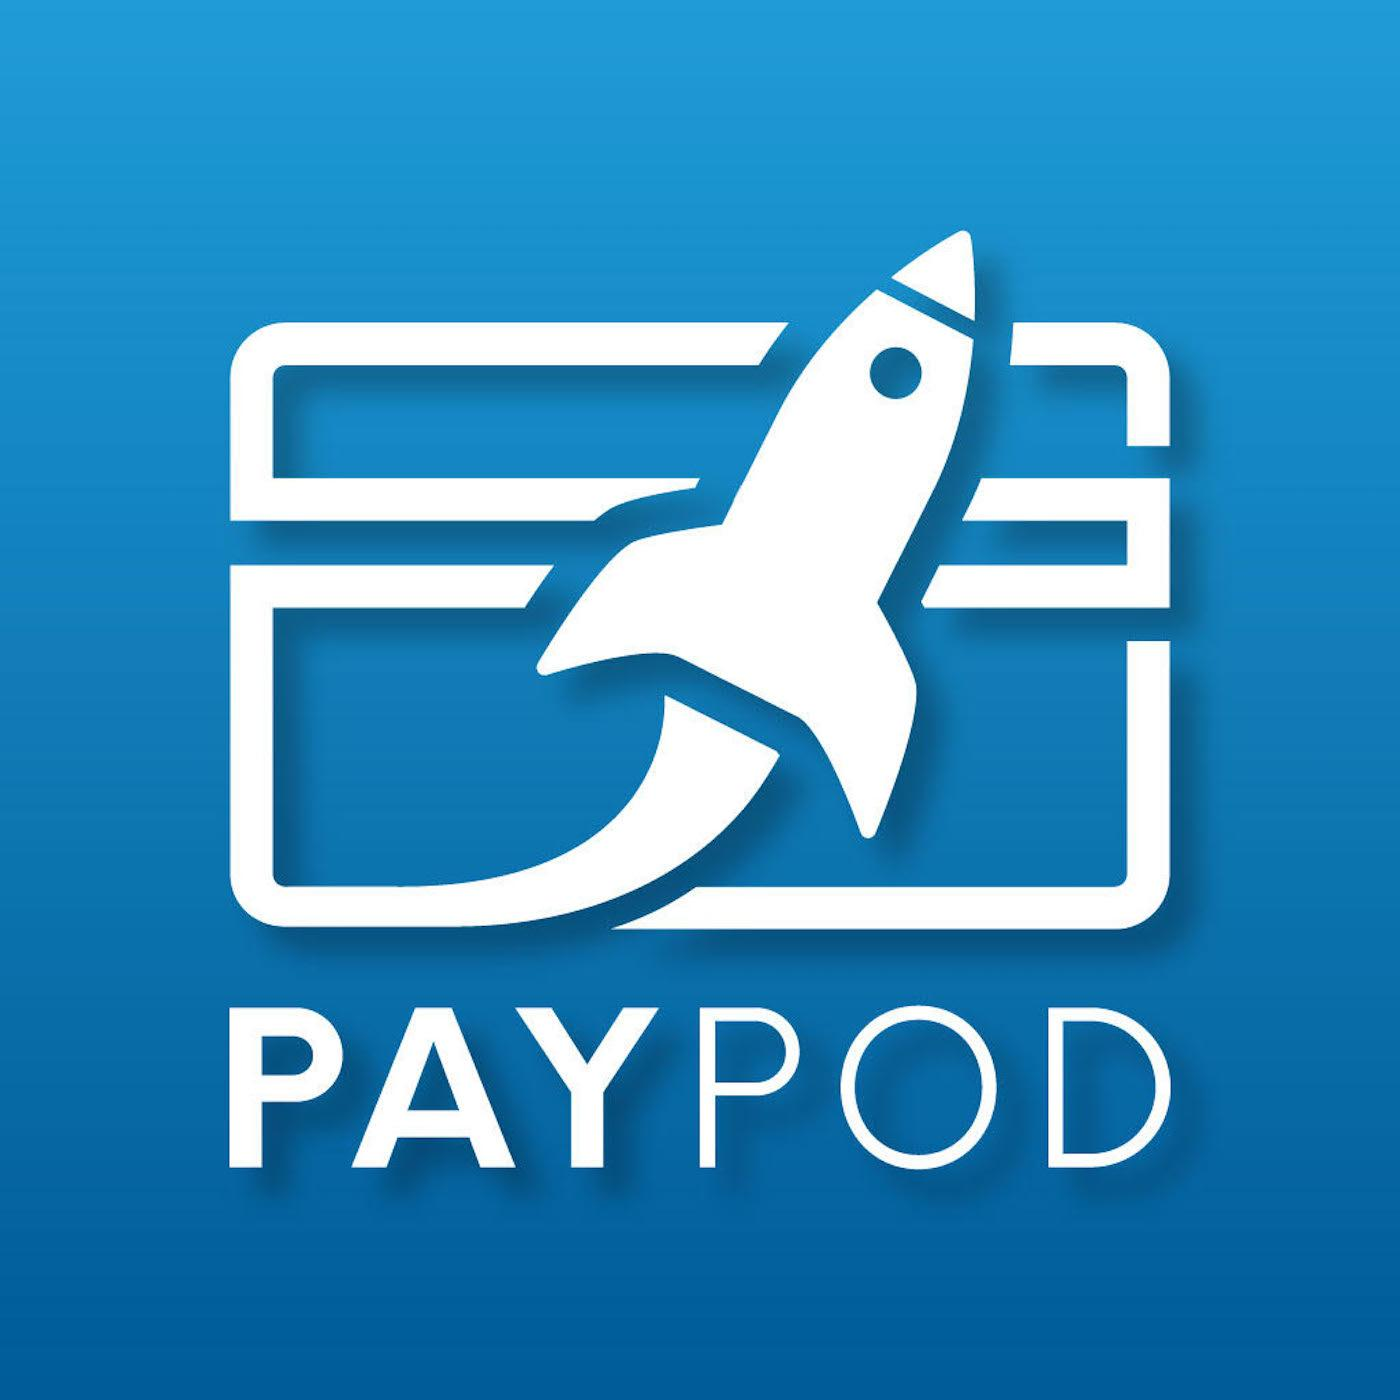 PayPod: The Payments Industry Podcast - Soar Payments LLC